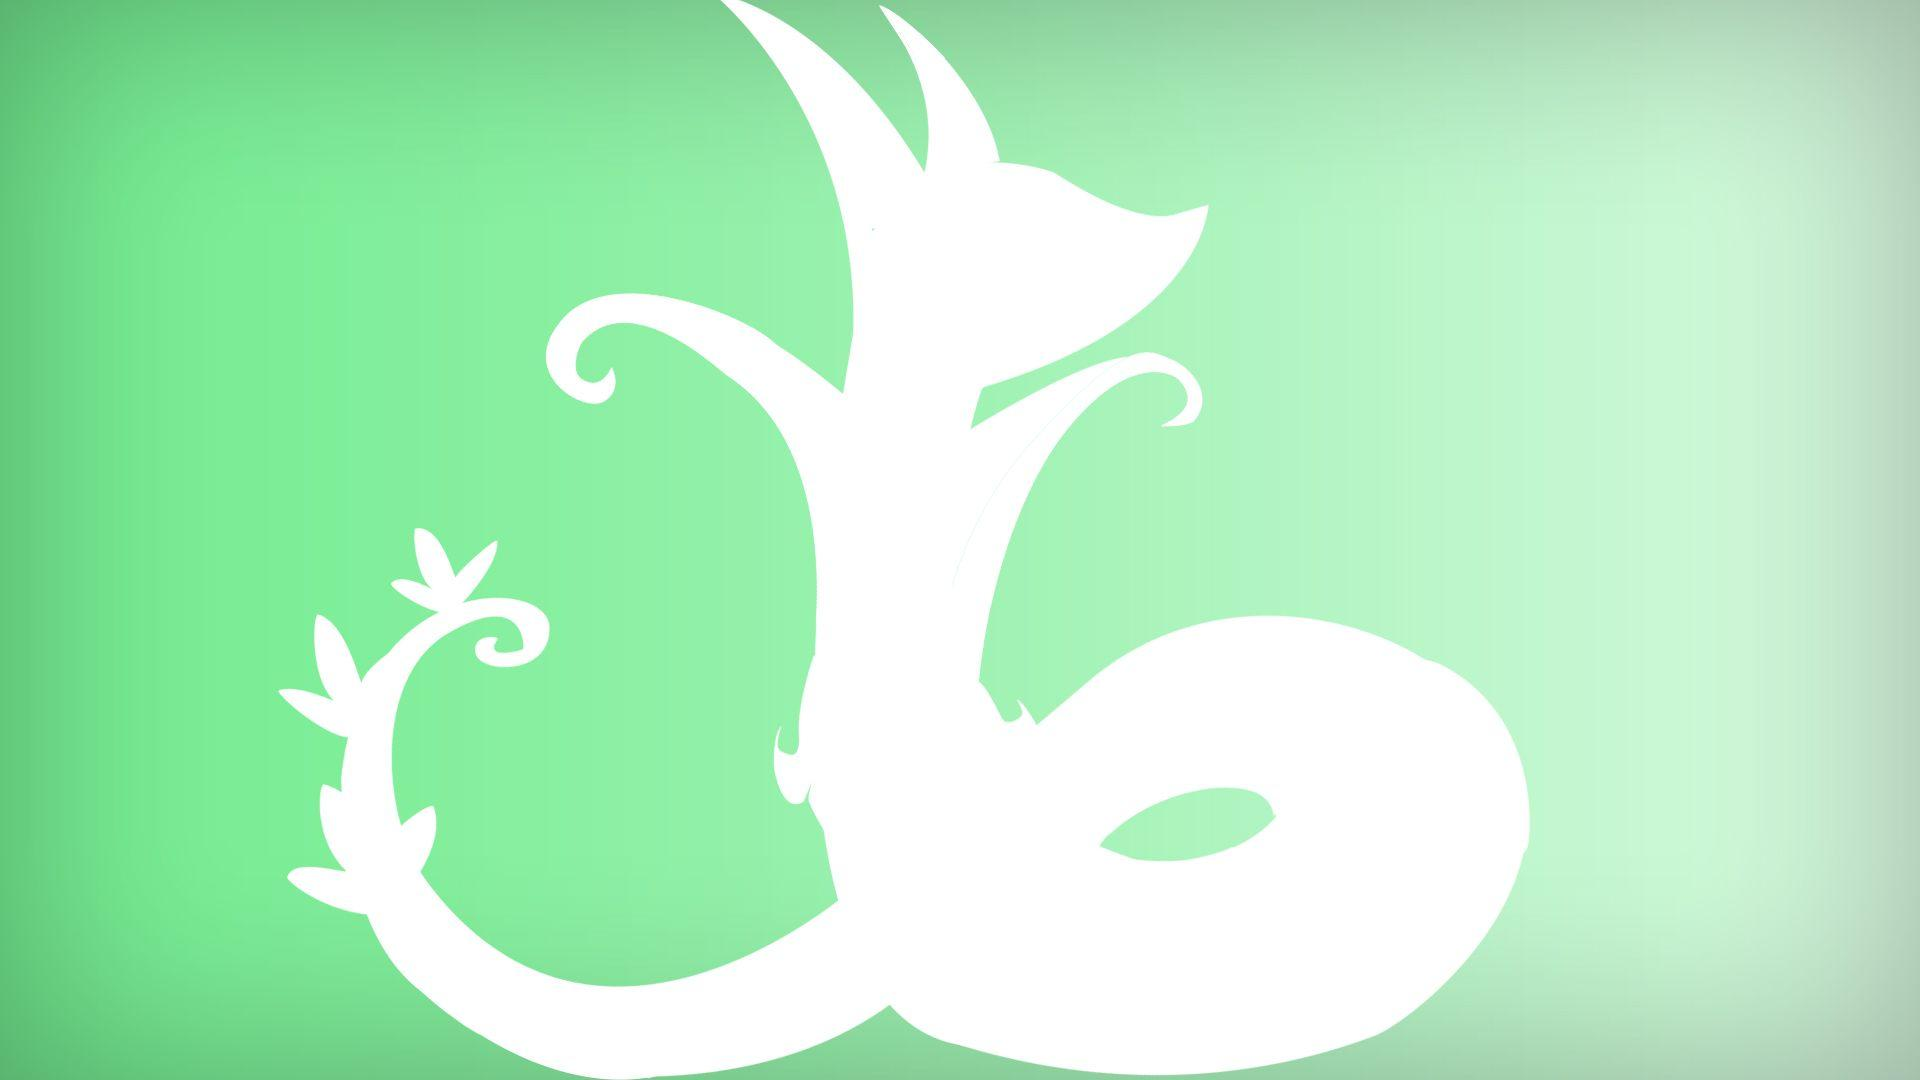 Serperior Wallpapers Iphone, PC Serperior Wallpapers Iphone Most